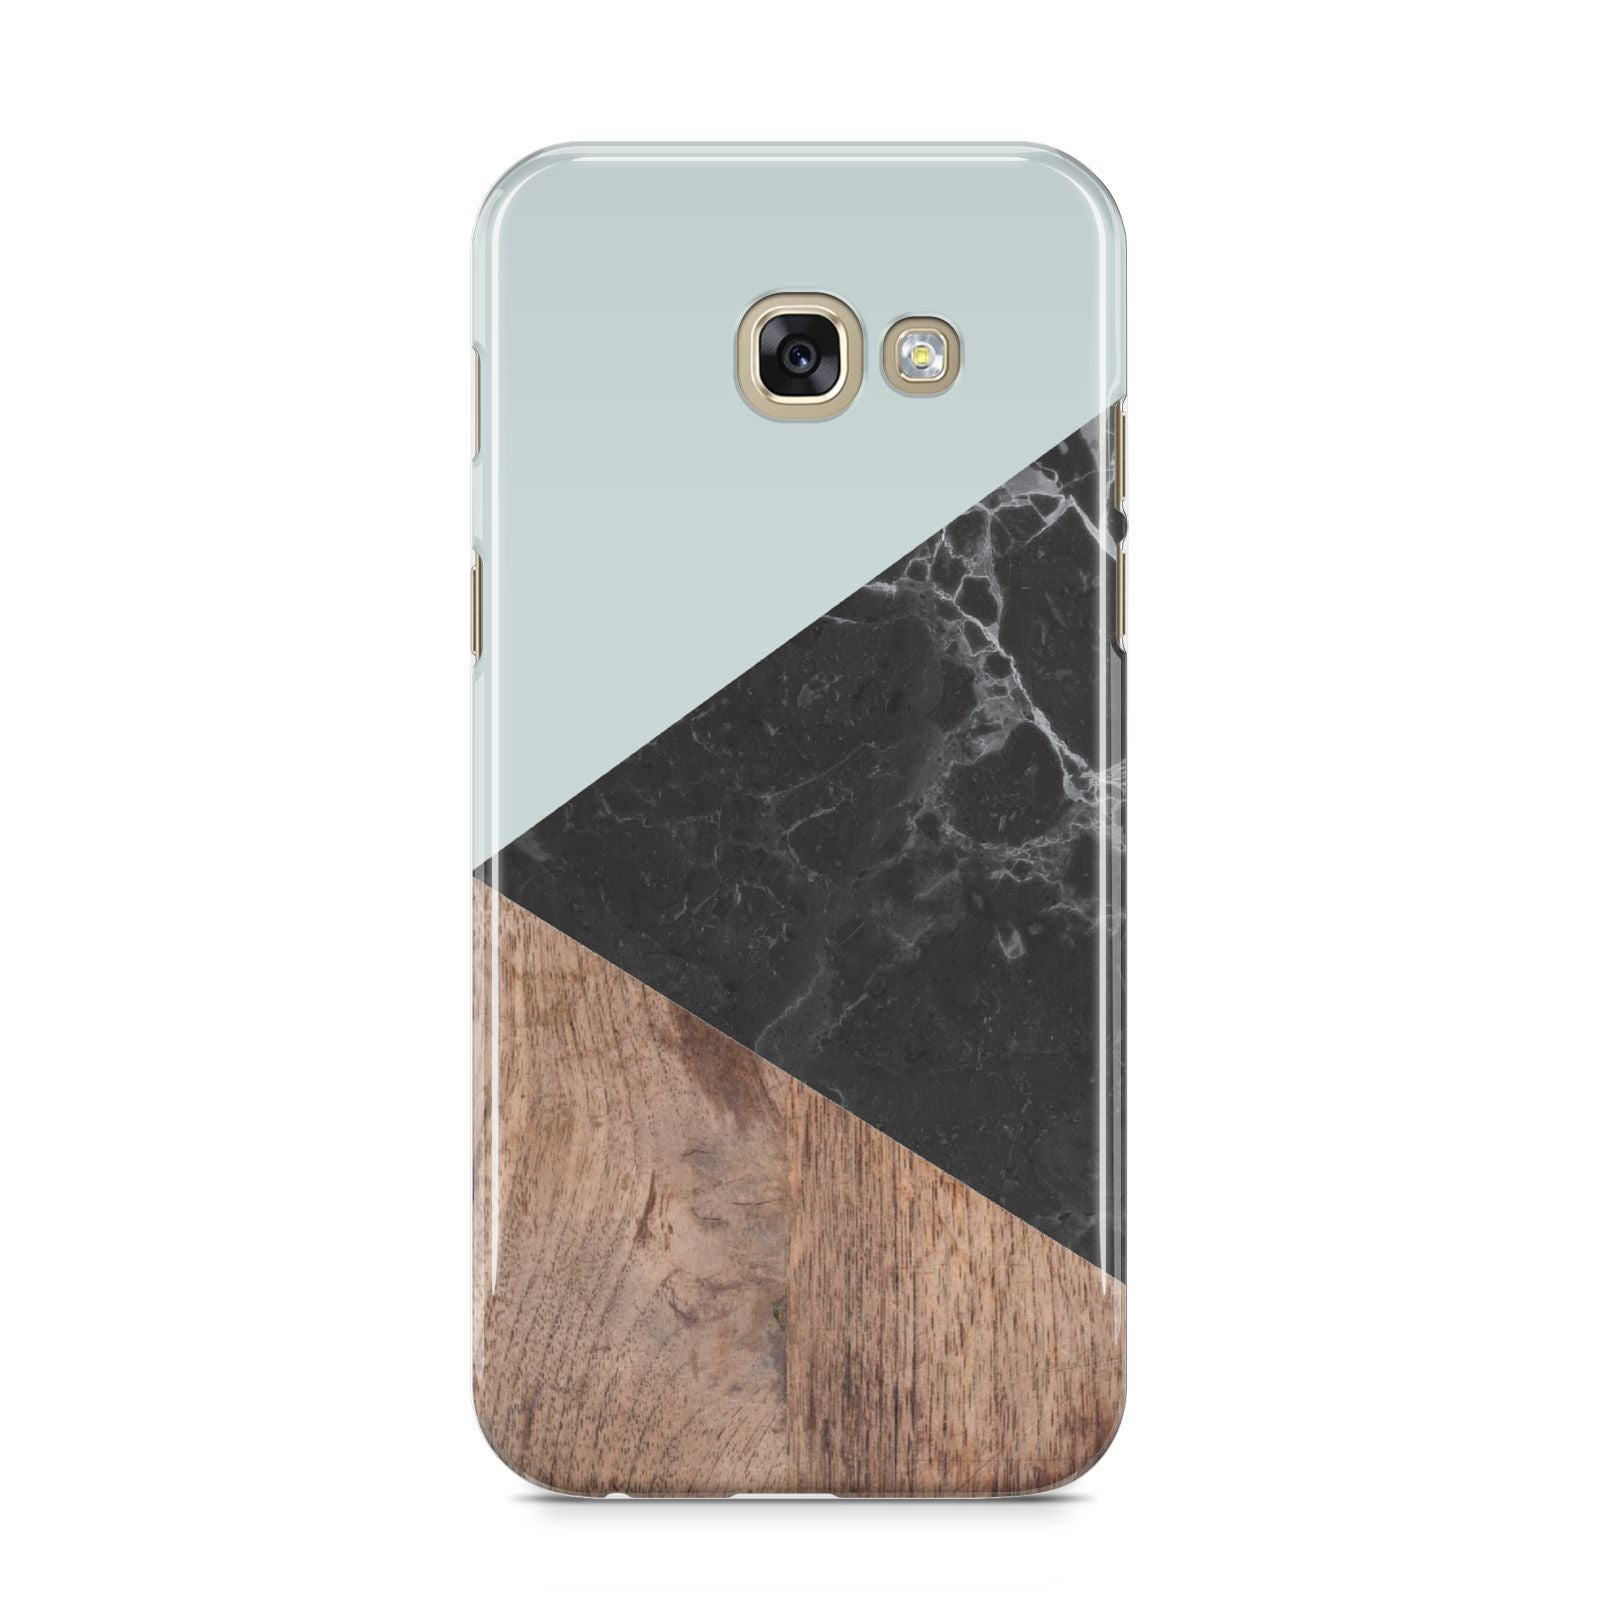 Marble Wood Geometric 2 Samsung Galaxy A5 2017 Case on gold phone